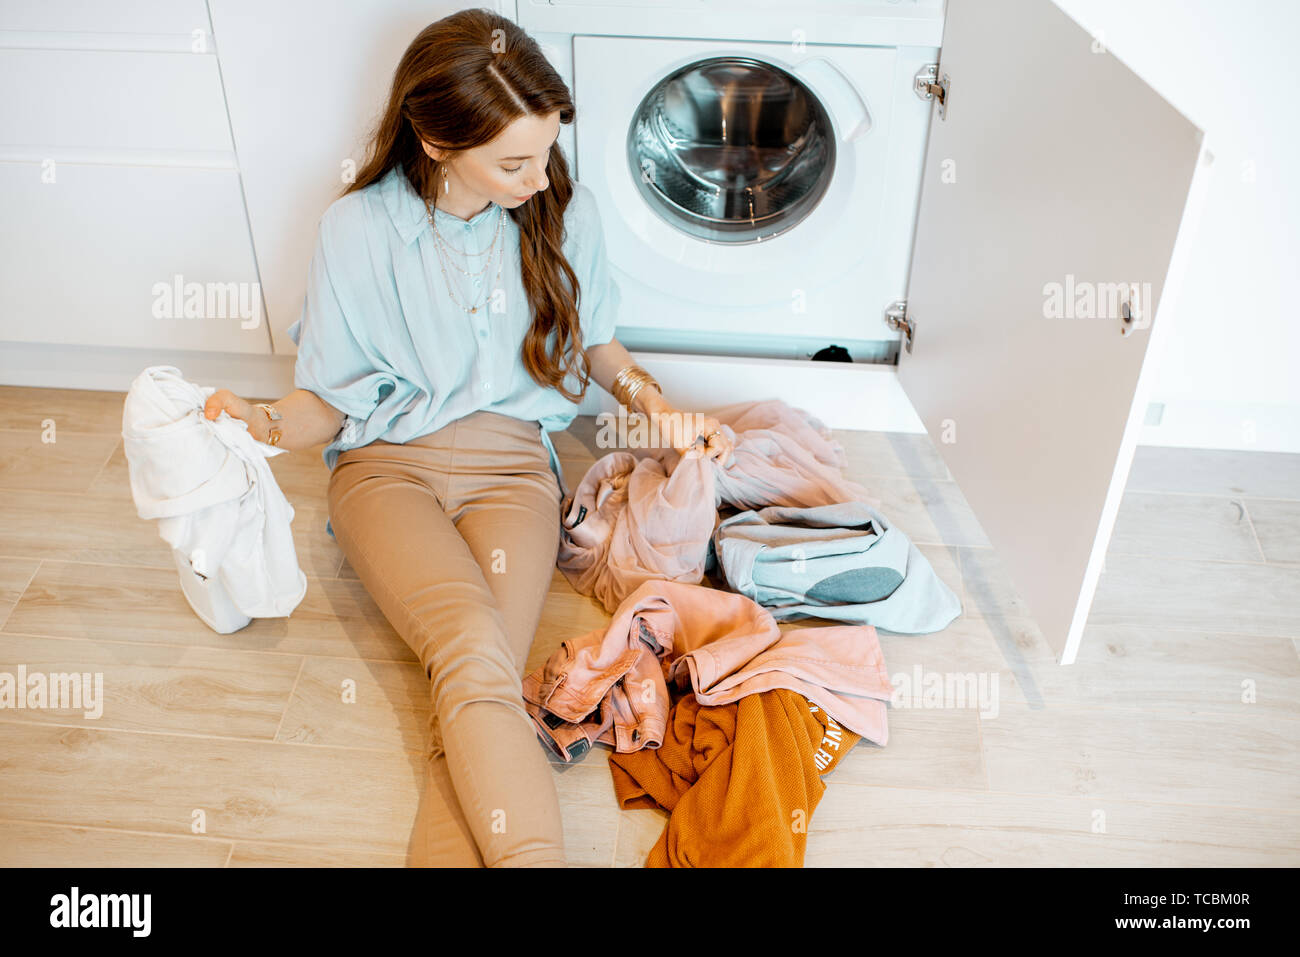 Young Woman Sorting Dirty Clothes While Sitting On The Floor Near